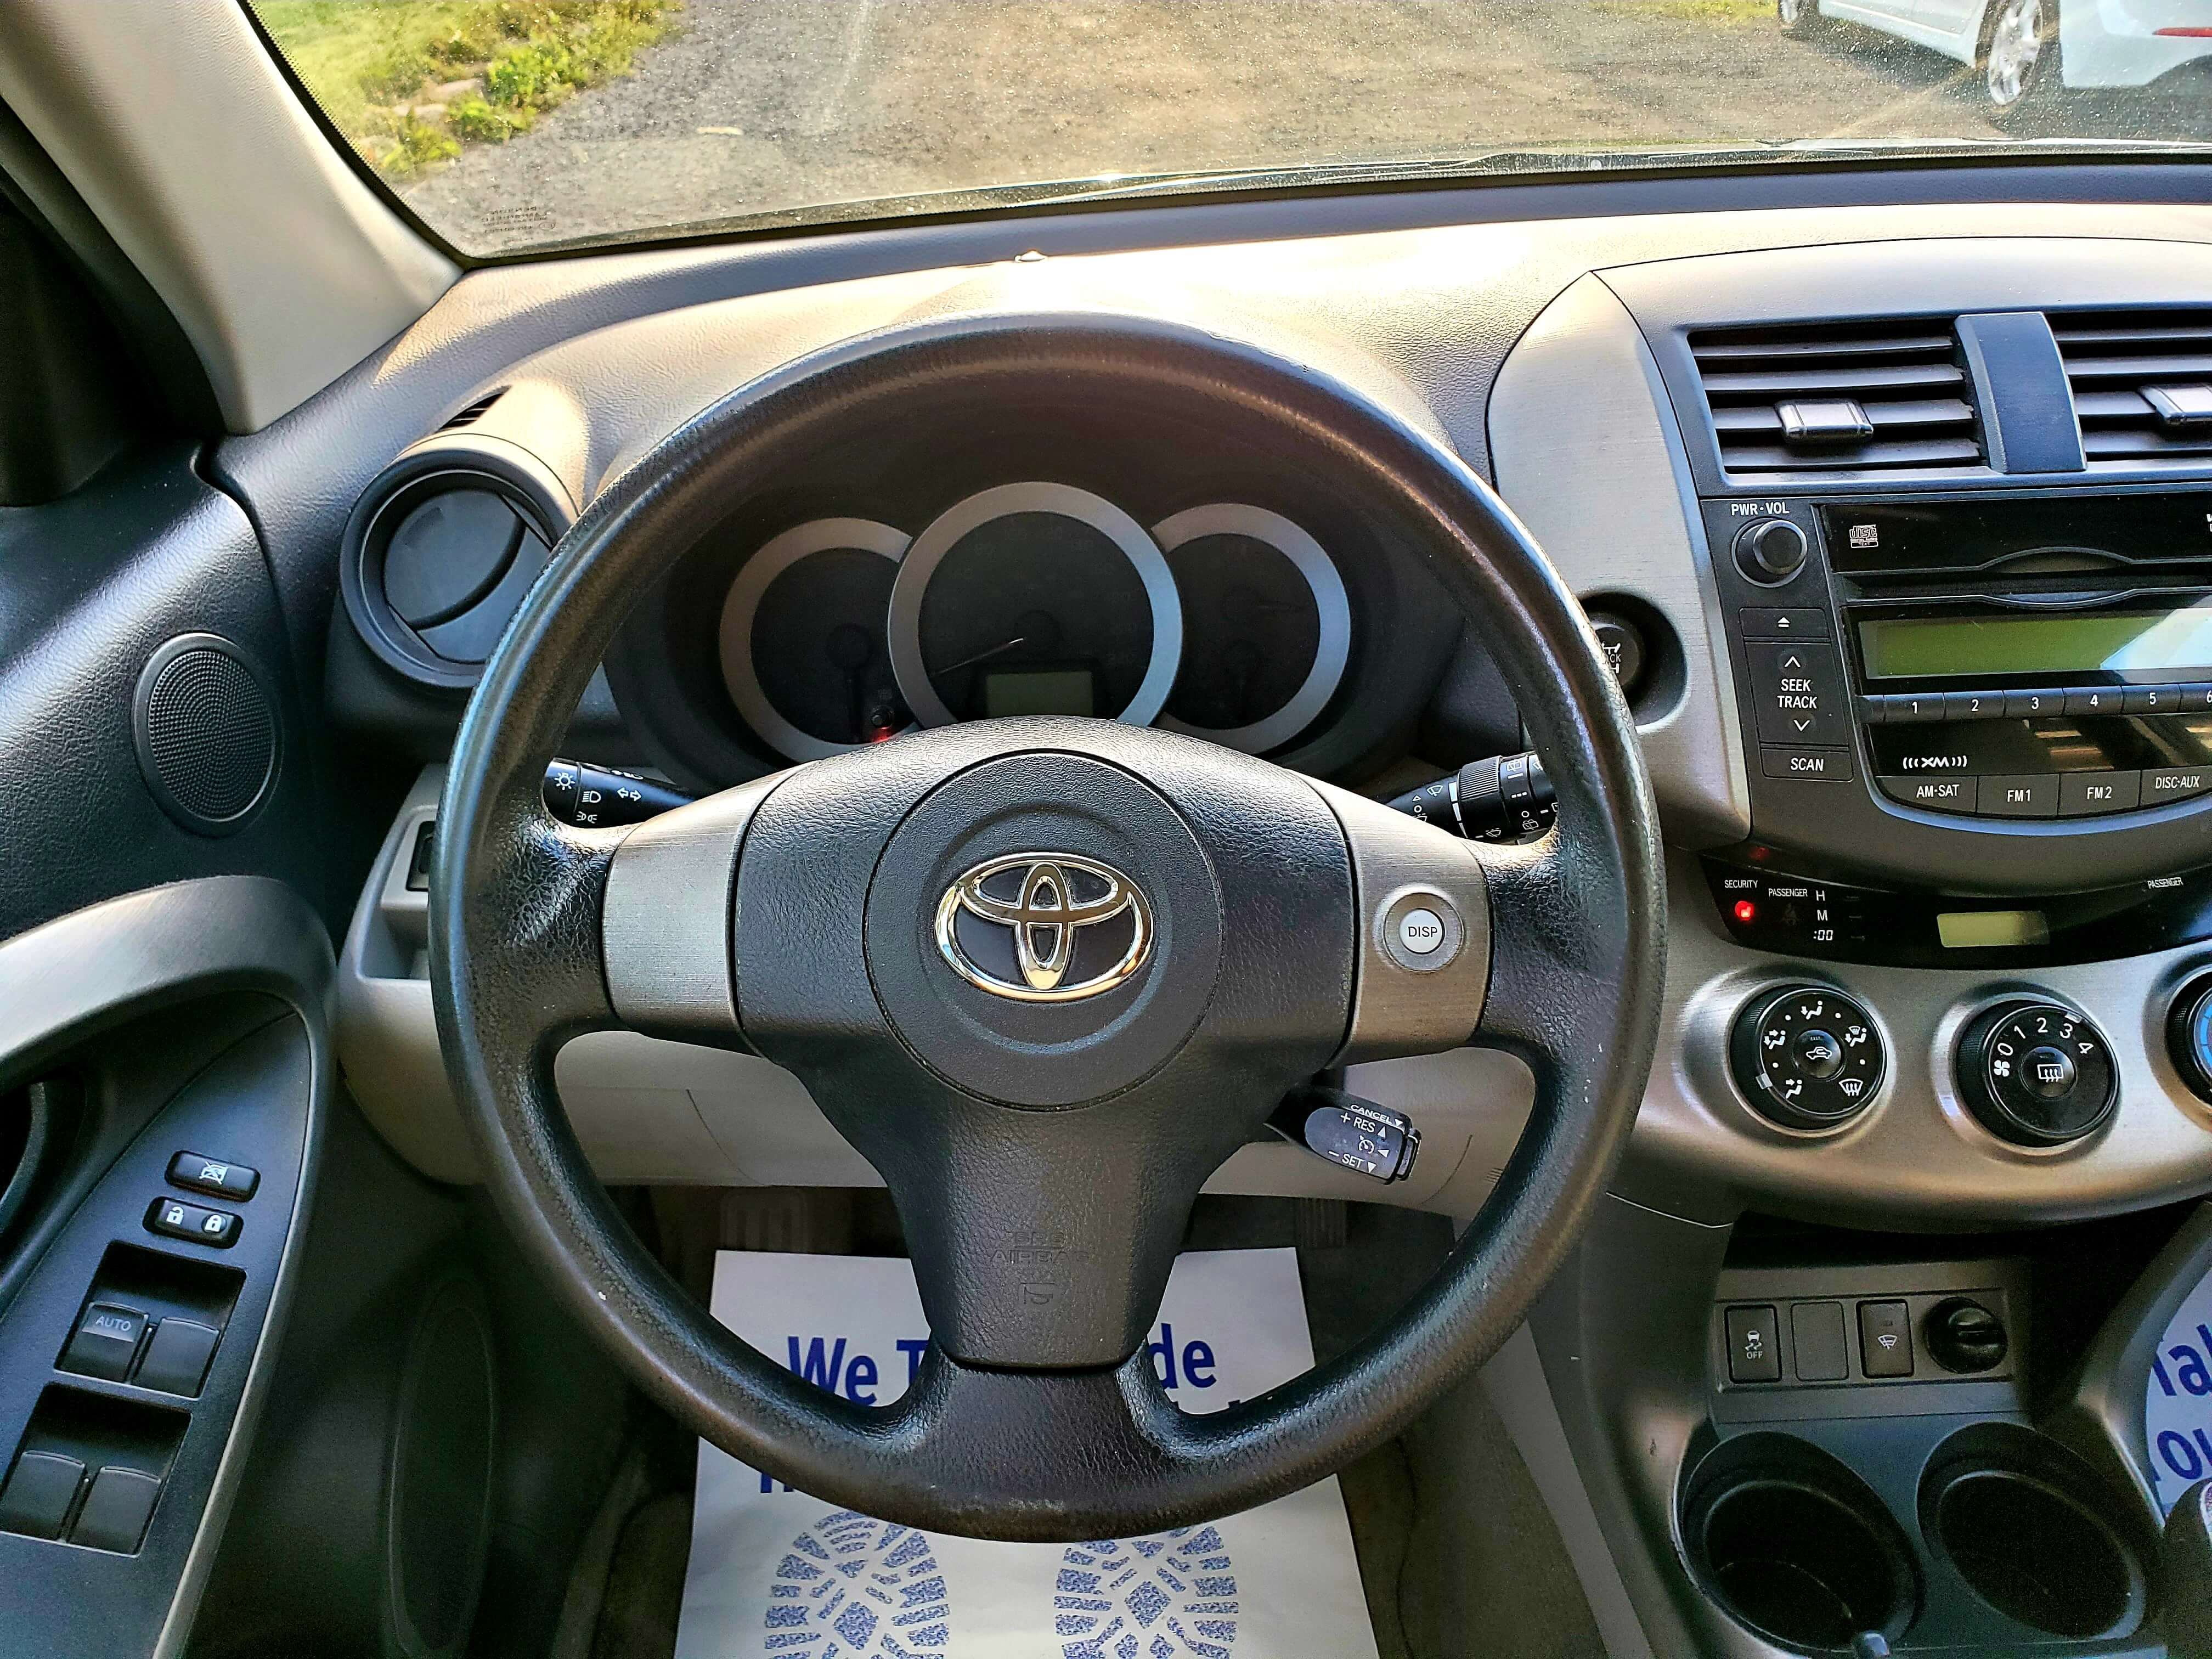 2010 TOYOTA RAV4 AWD 4Cyl complet